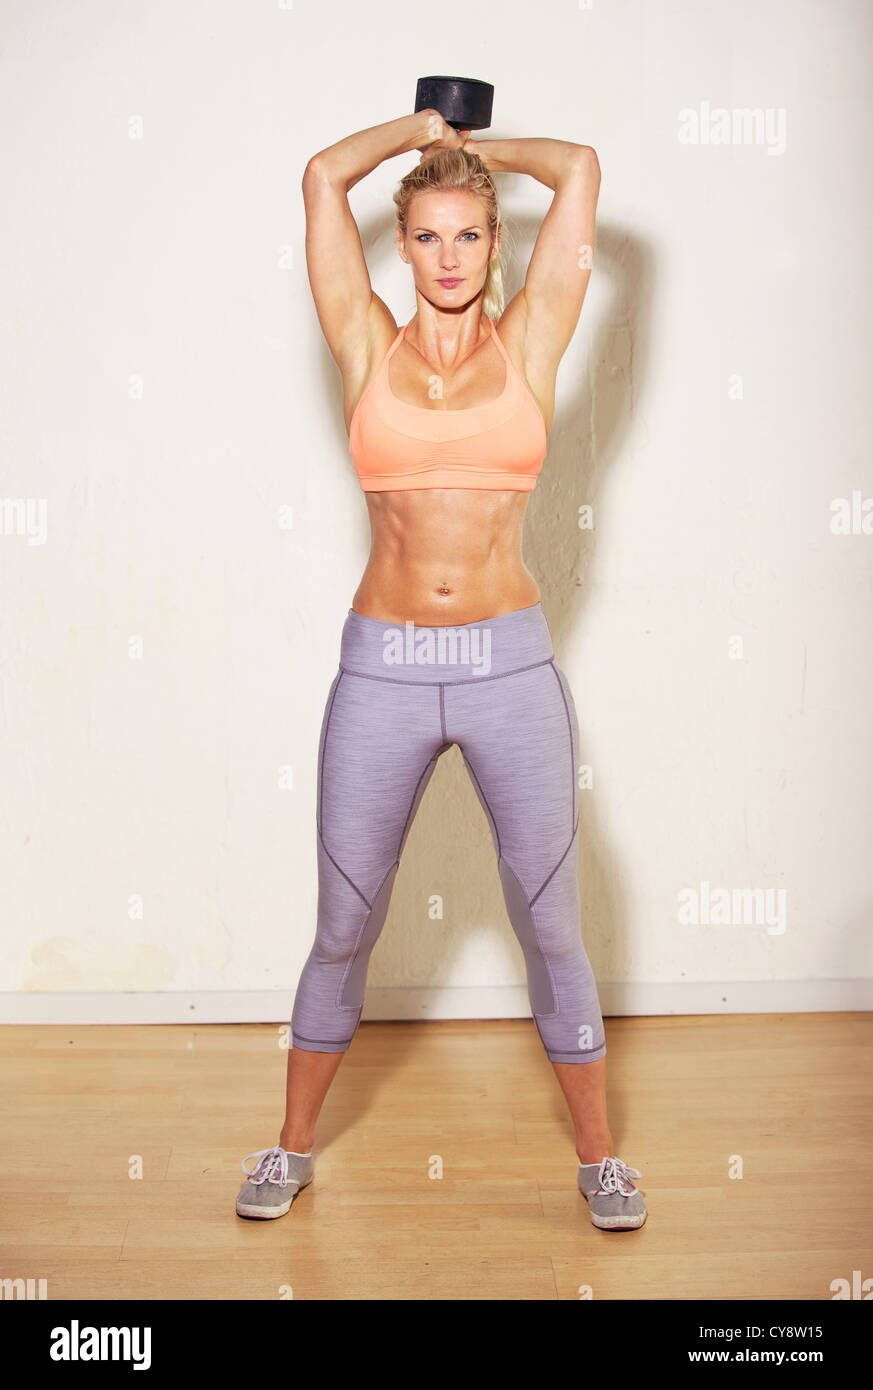 Toned Body High Resolution Stock Photography And Images Alamy Believe it or not, it also helps in bone remodeling, i.e., as your muscles get stronger, your bones are forced to become stronger too. https www alamy com stock photo woman with toned body lifting a dumbbell 51211697 html